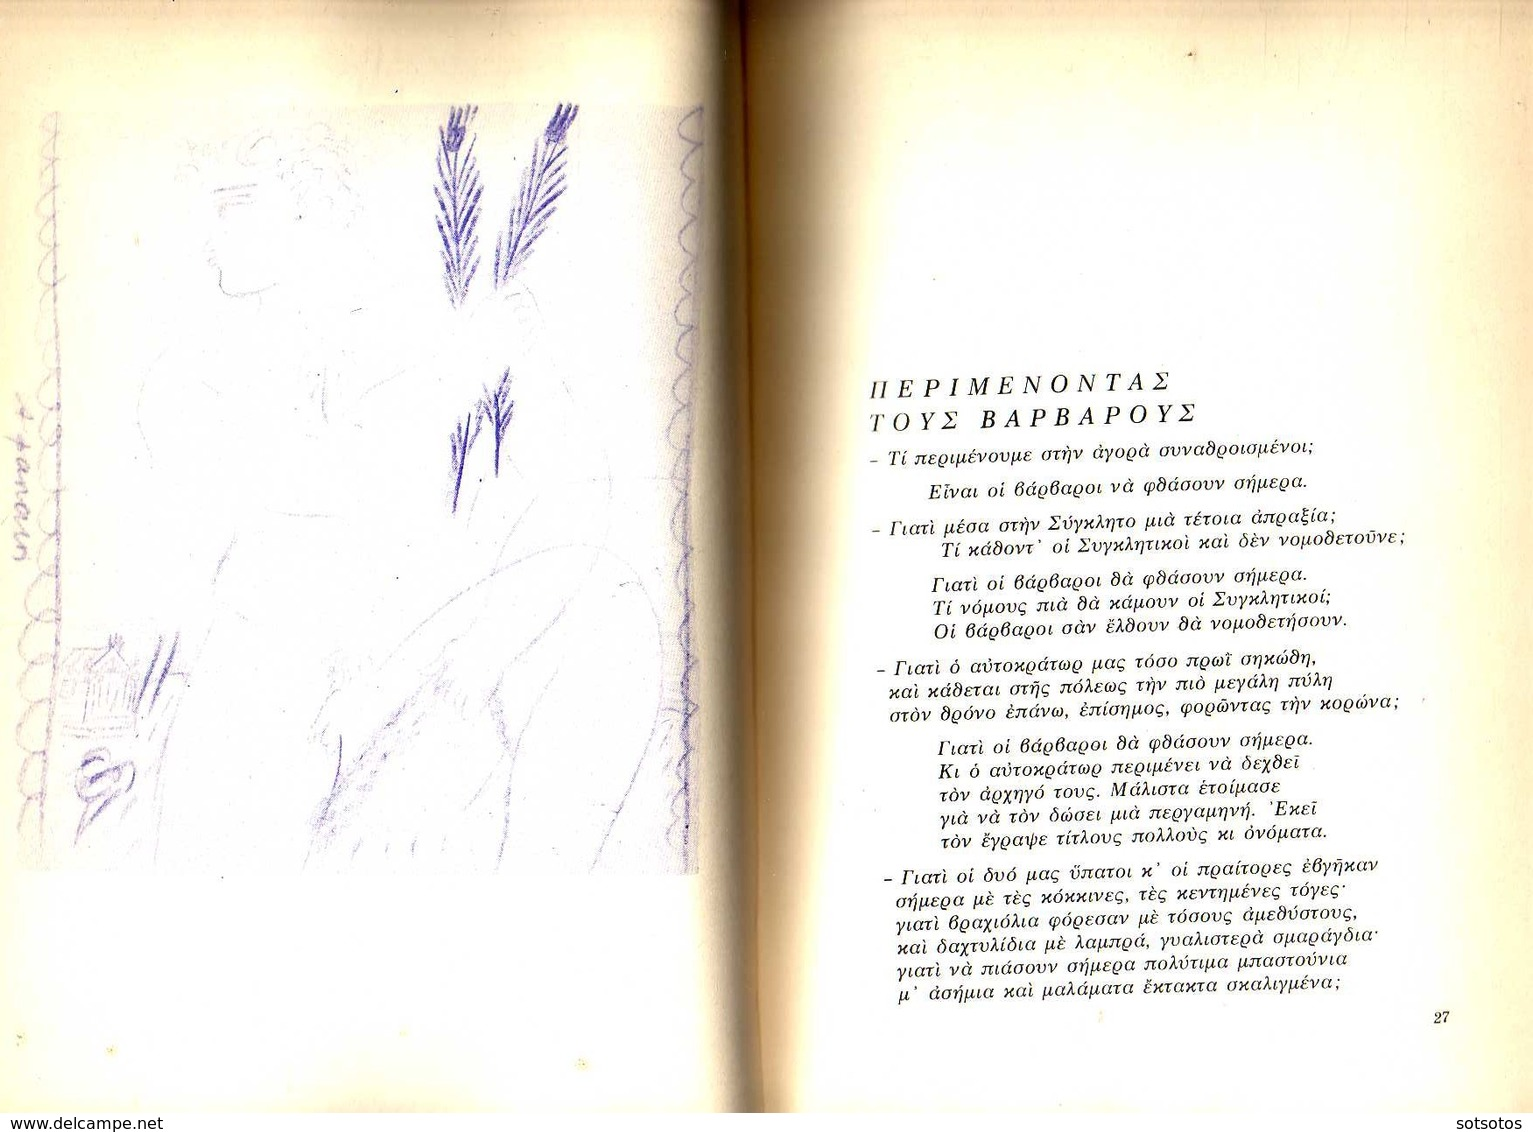 GREEK BOOK - KAVAFIS, POEMS With MANY DESIGNS Of The Well Known Al: FASSIANOS ΚΑΒΑΦΗΣ: ΠΟΙΗΜΑΤΑ, με Σχέδια Α. ΦΑΣΙΑΝΟΥ, - Books, Magazines, Comics